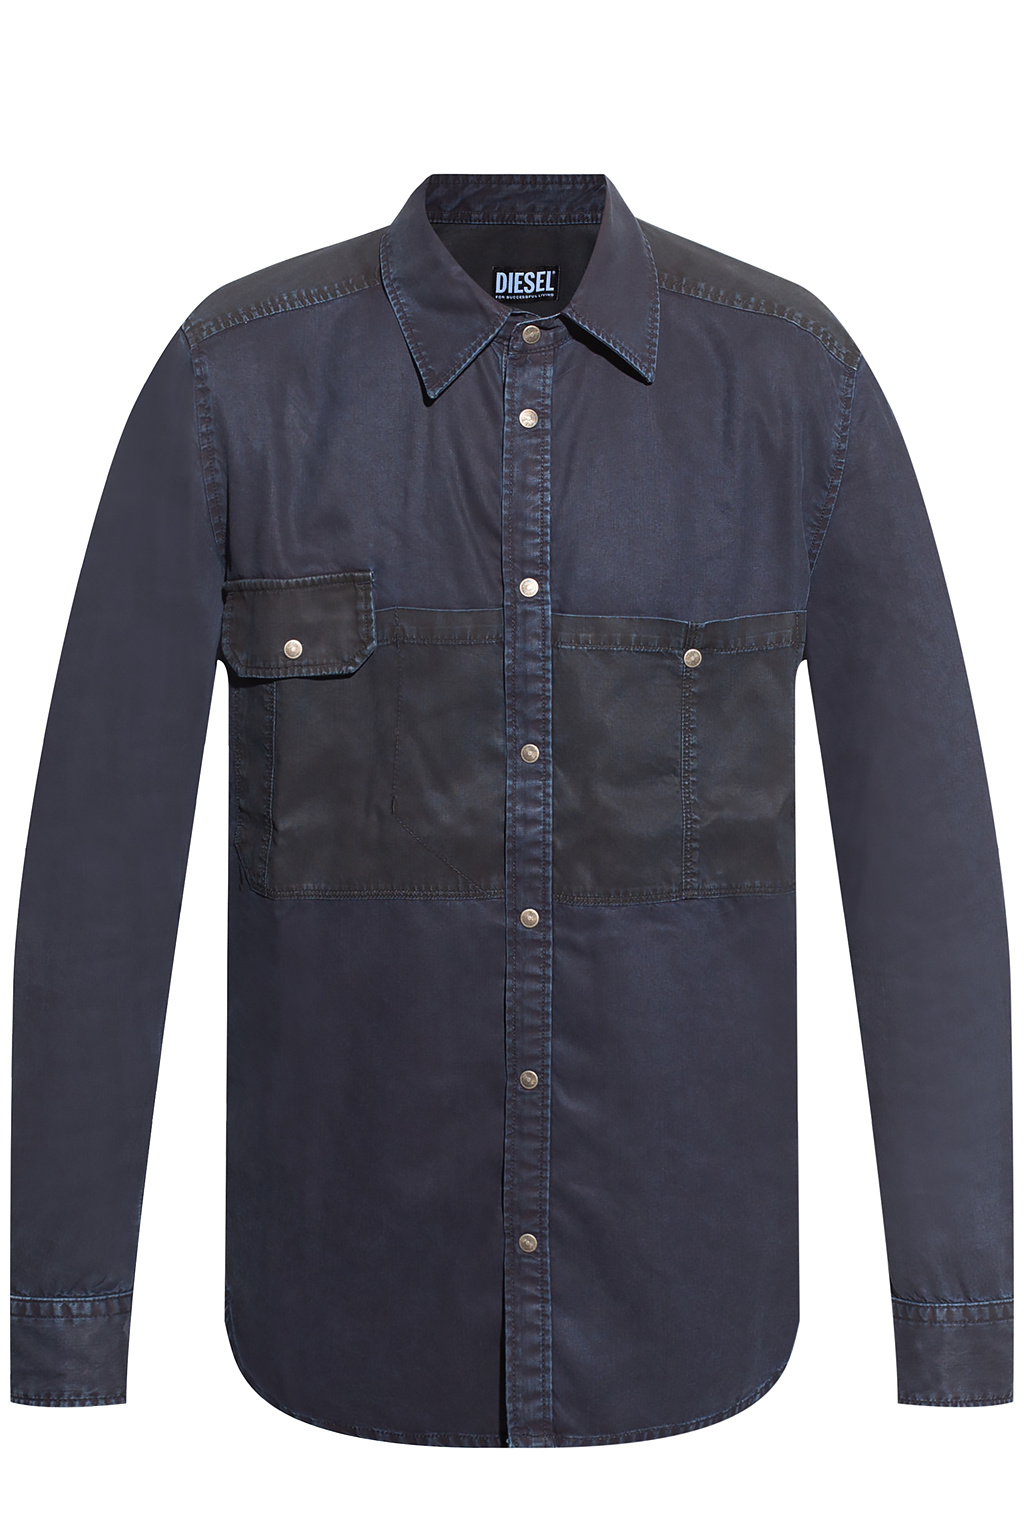 Diesel Shirt with pockets